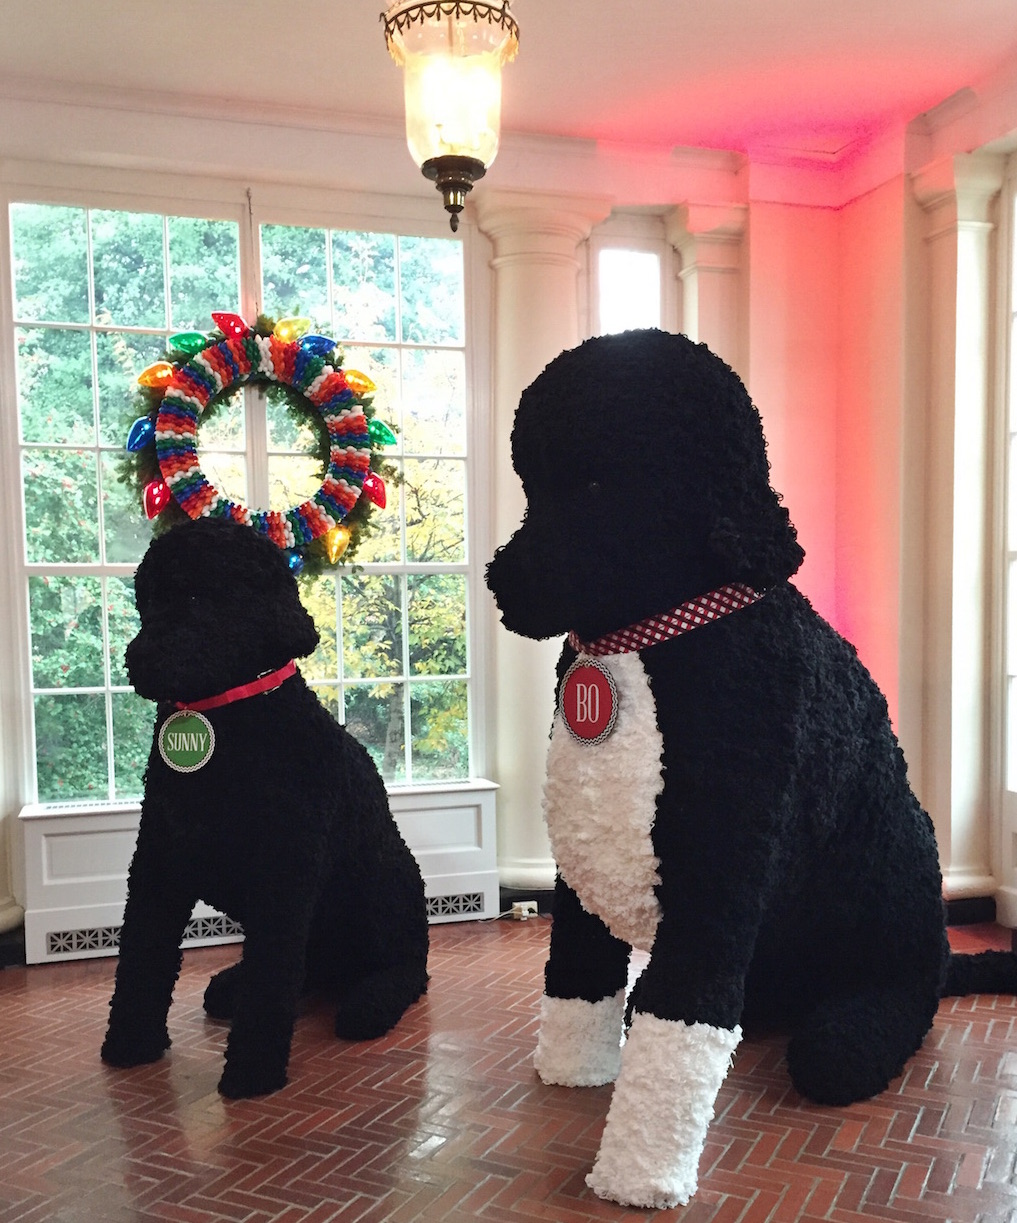 Larger than Life replicas of Bo & Sunny made of 25,000 yarn poms-poms. Photo by Andrea Marks.